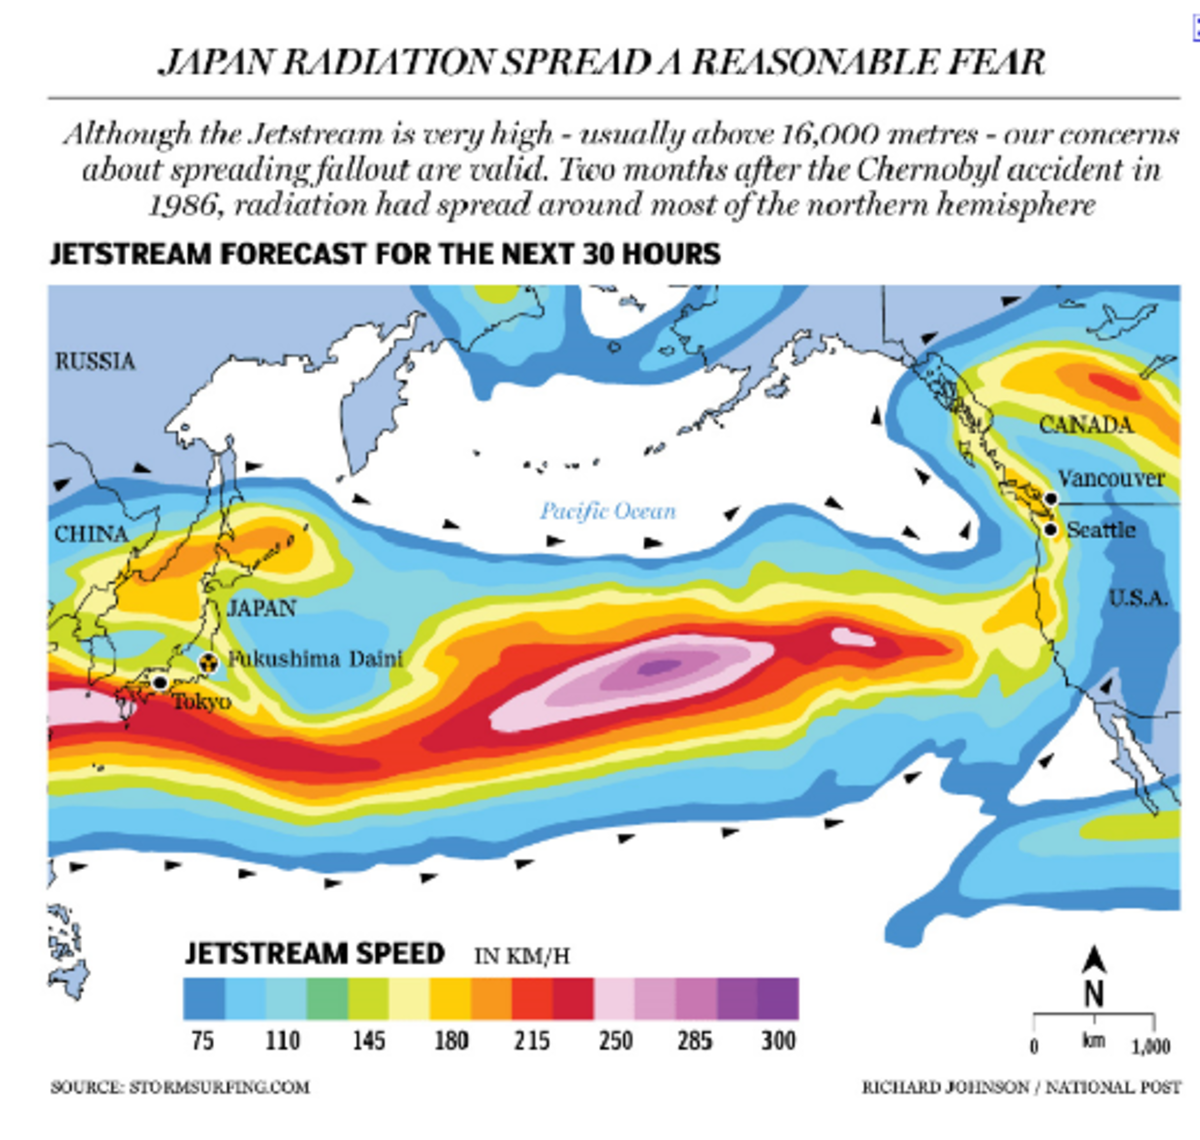 A view of the jet stream and how radiation spread to North America(Waller).